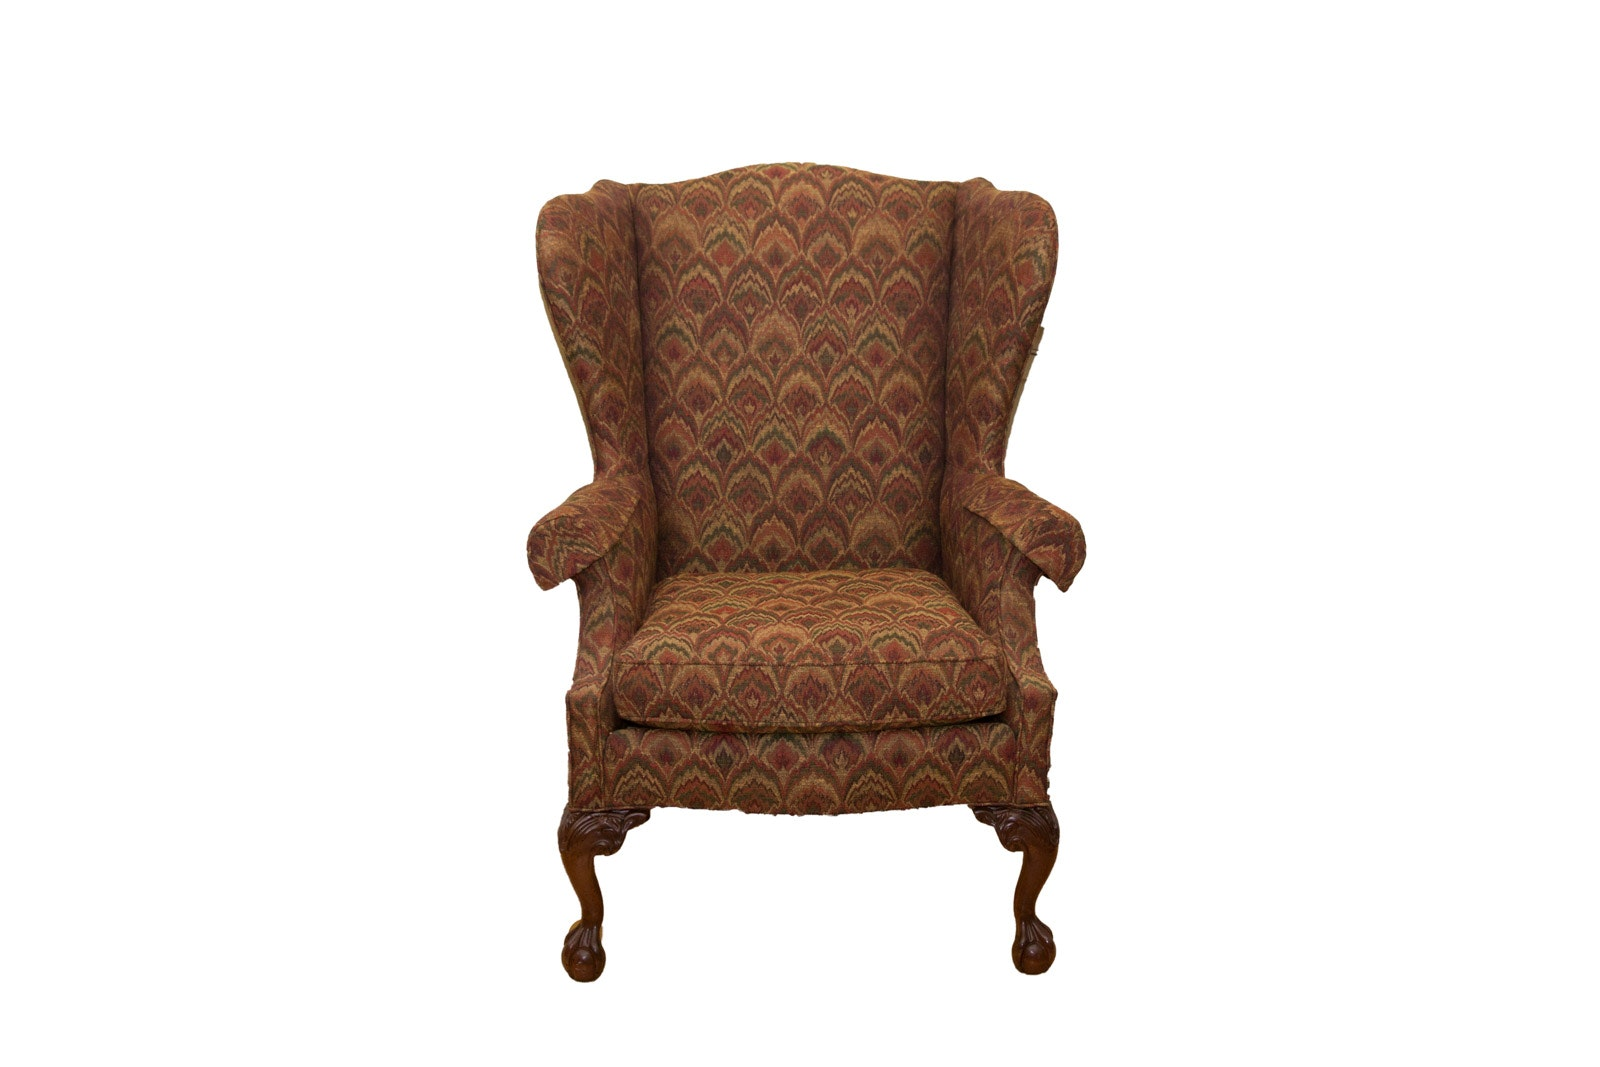 Queen Anne Style Upholstered Armchair By Sherrill Furniture  Queen Anne Armchair H29